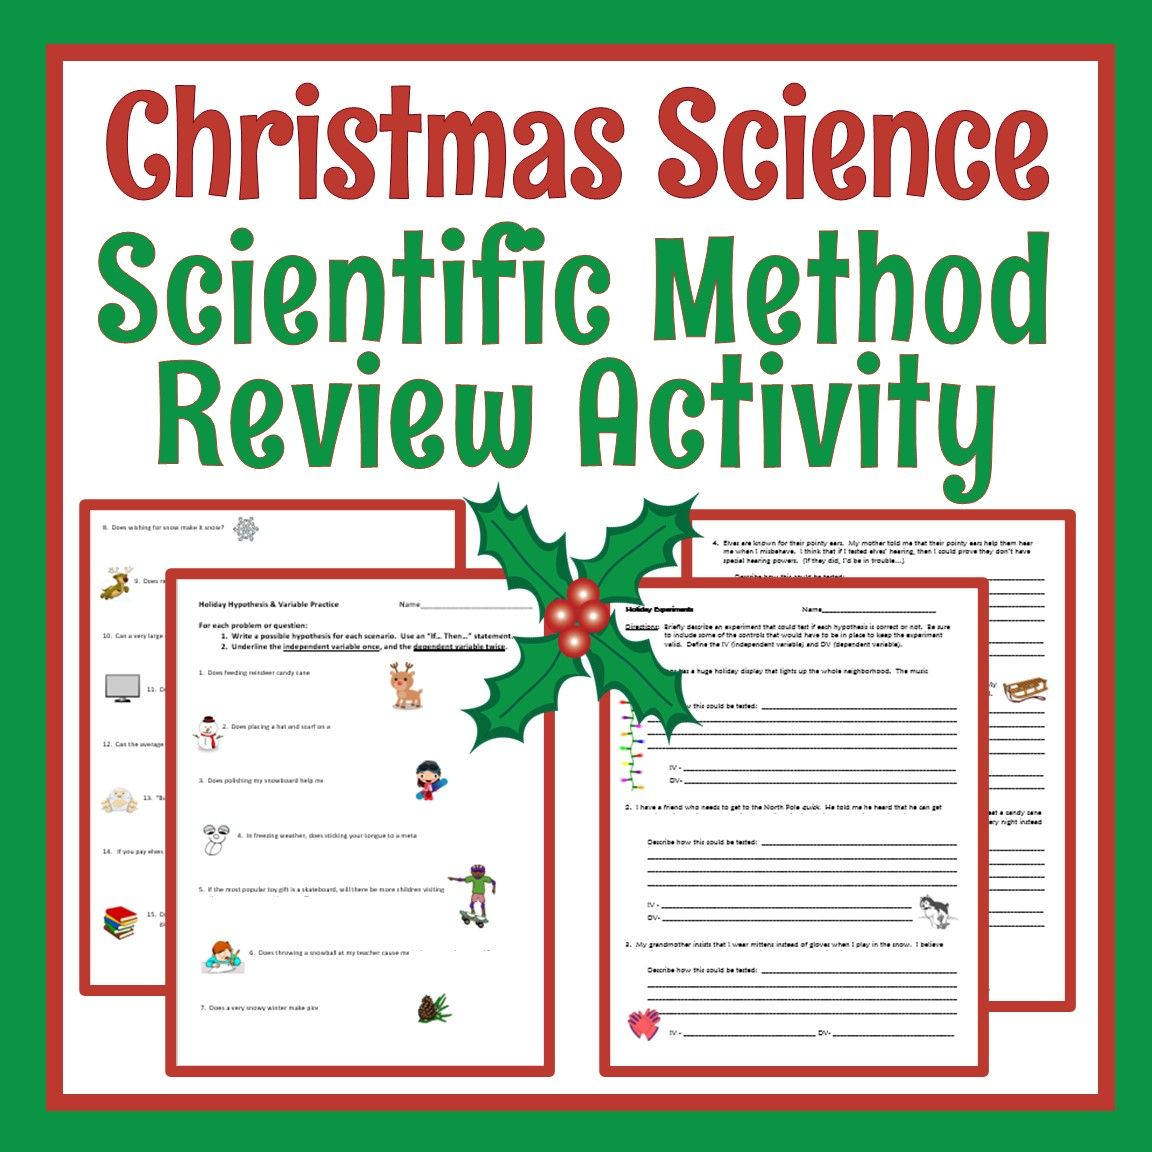 Christmas Holiday Science Worksheet For Middle School